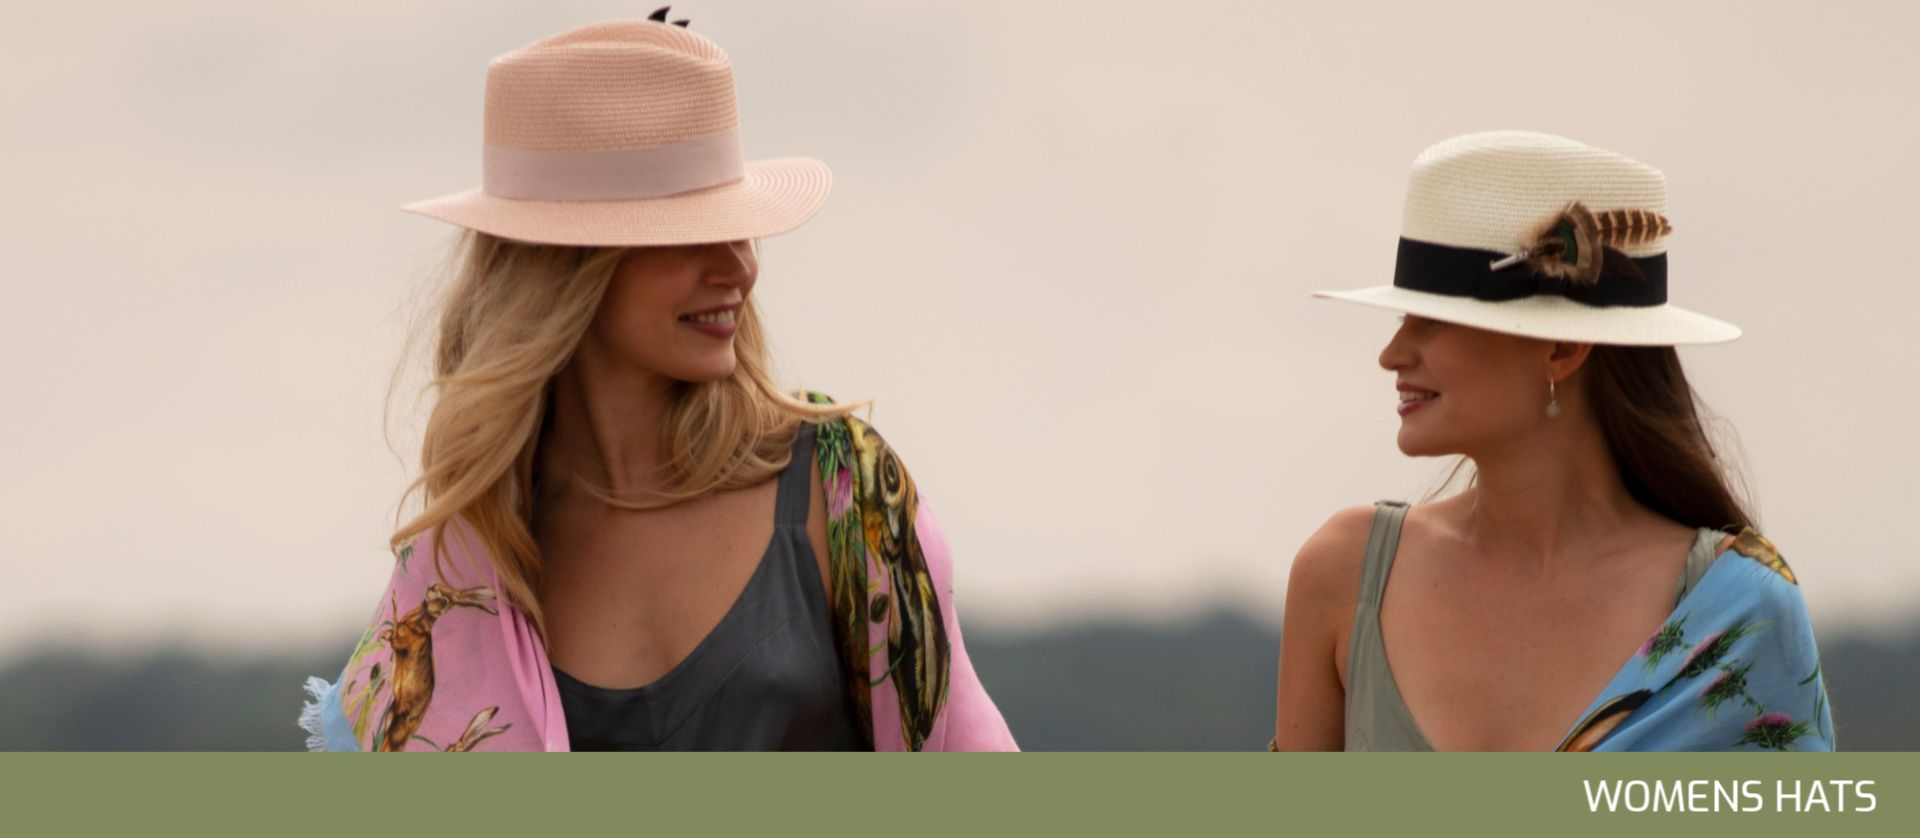 76fe3e305 Buy Womens Hats UK - Free Delivery - Cotswold Country Hats - Page 2